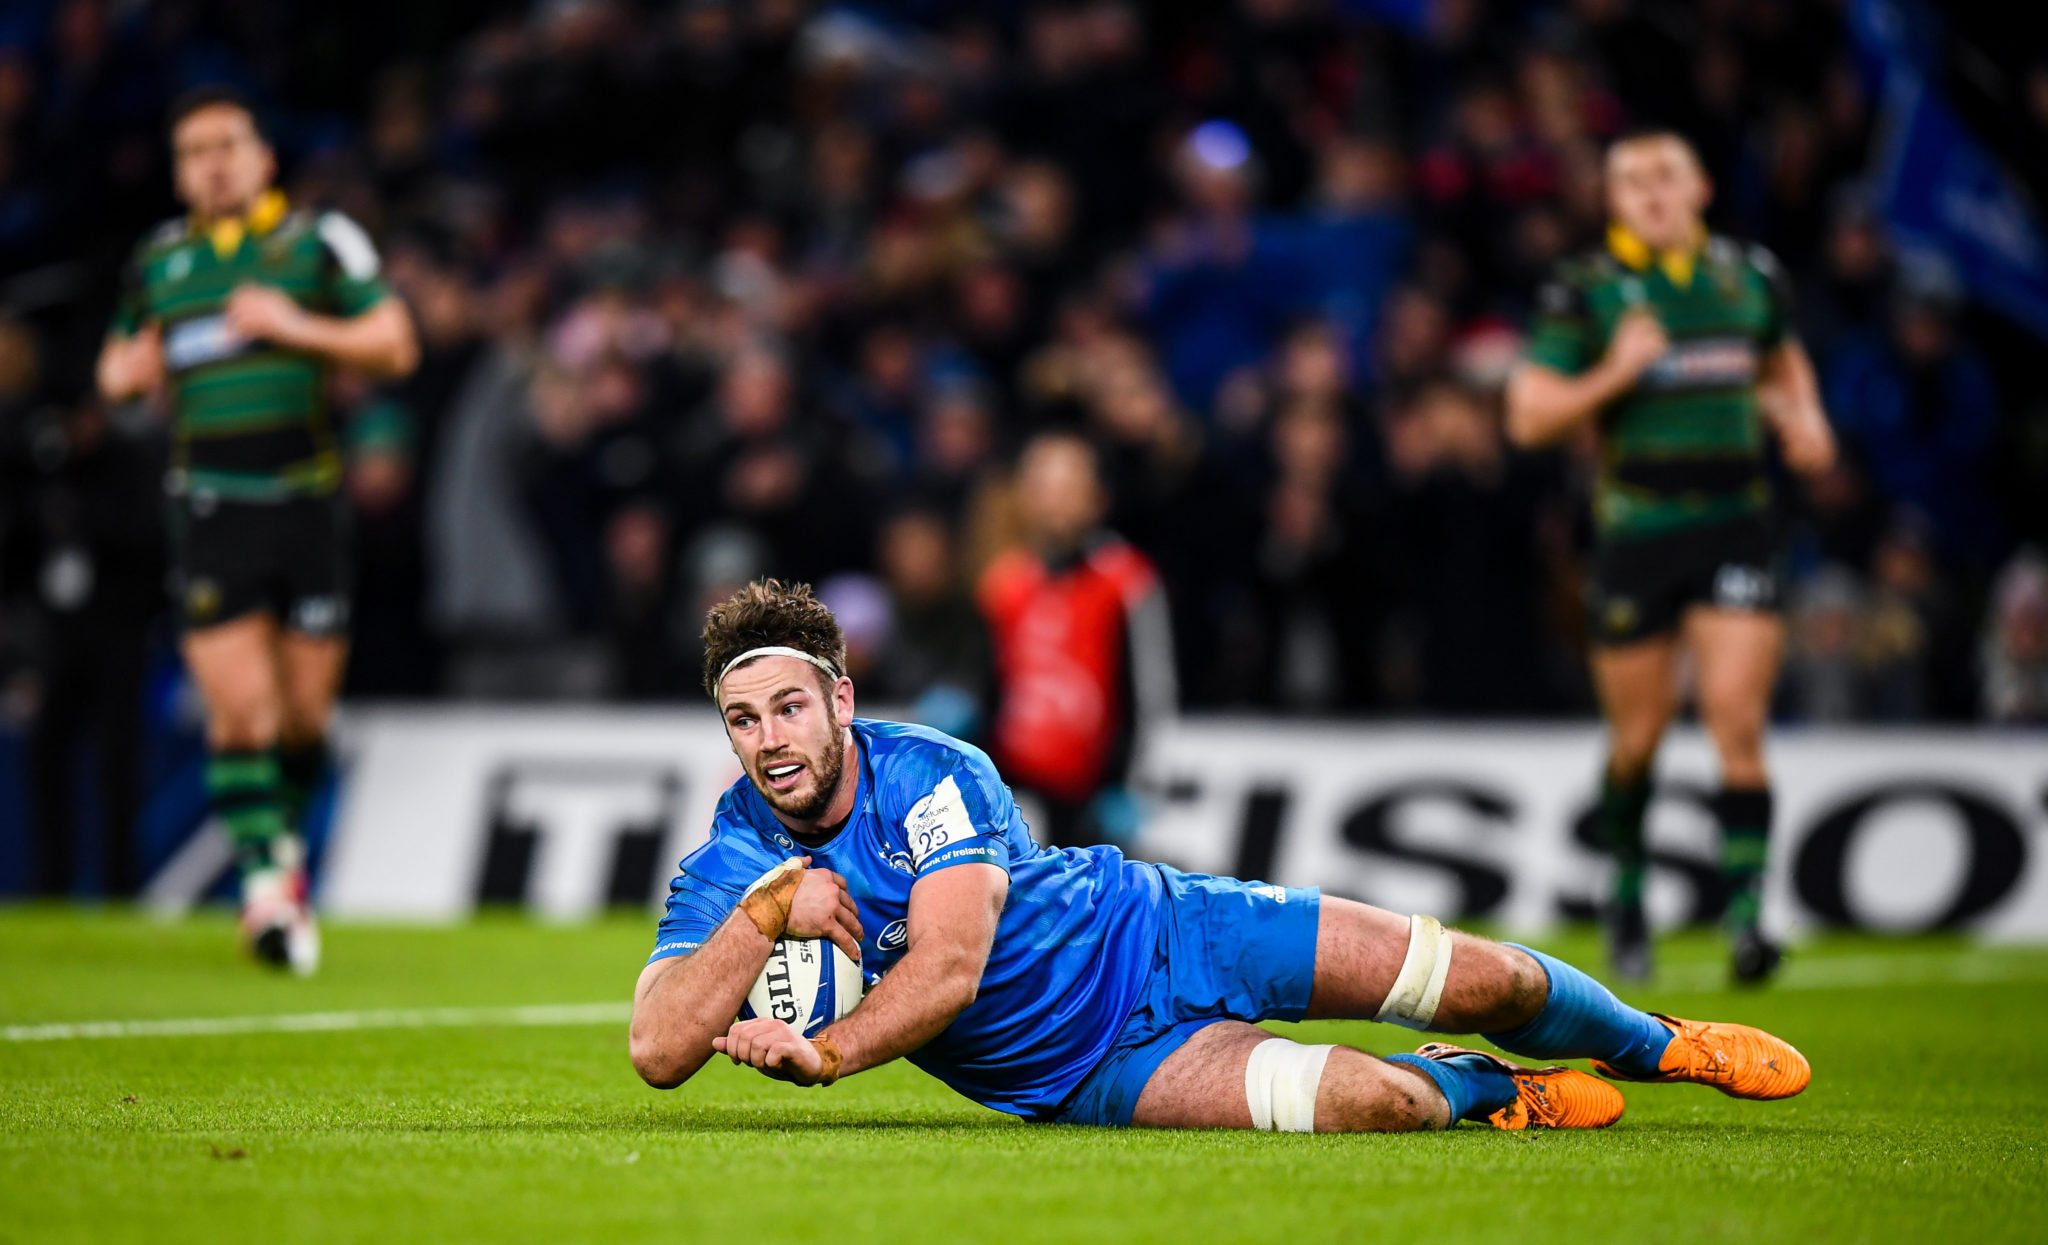 Caelan Doris of Leinster scores his side's seventh try during the Heineken Champions Cup Pool 1 Round 4 match between Leinster and Northampton Saints at the Aviva Stadium in Dublin